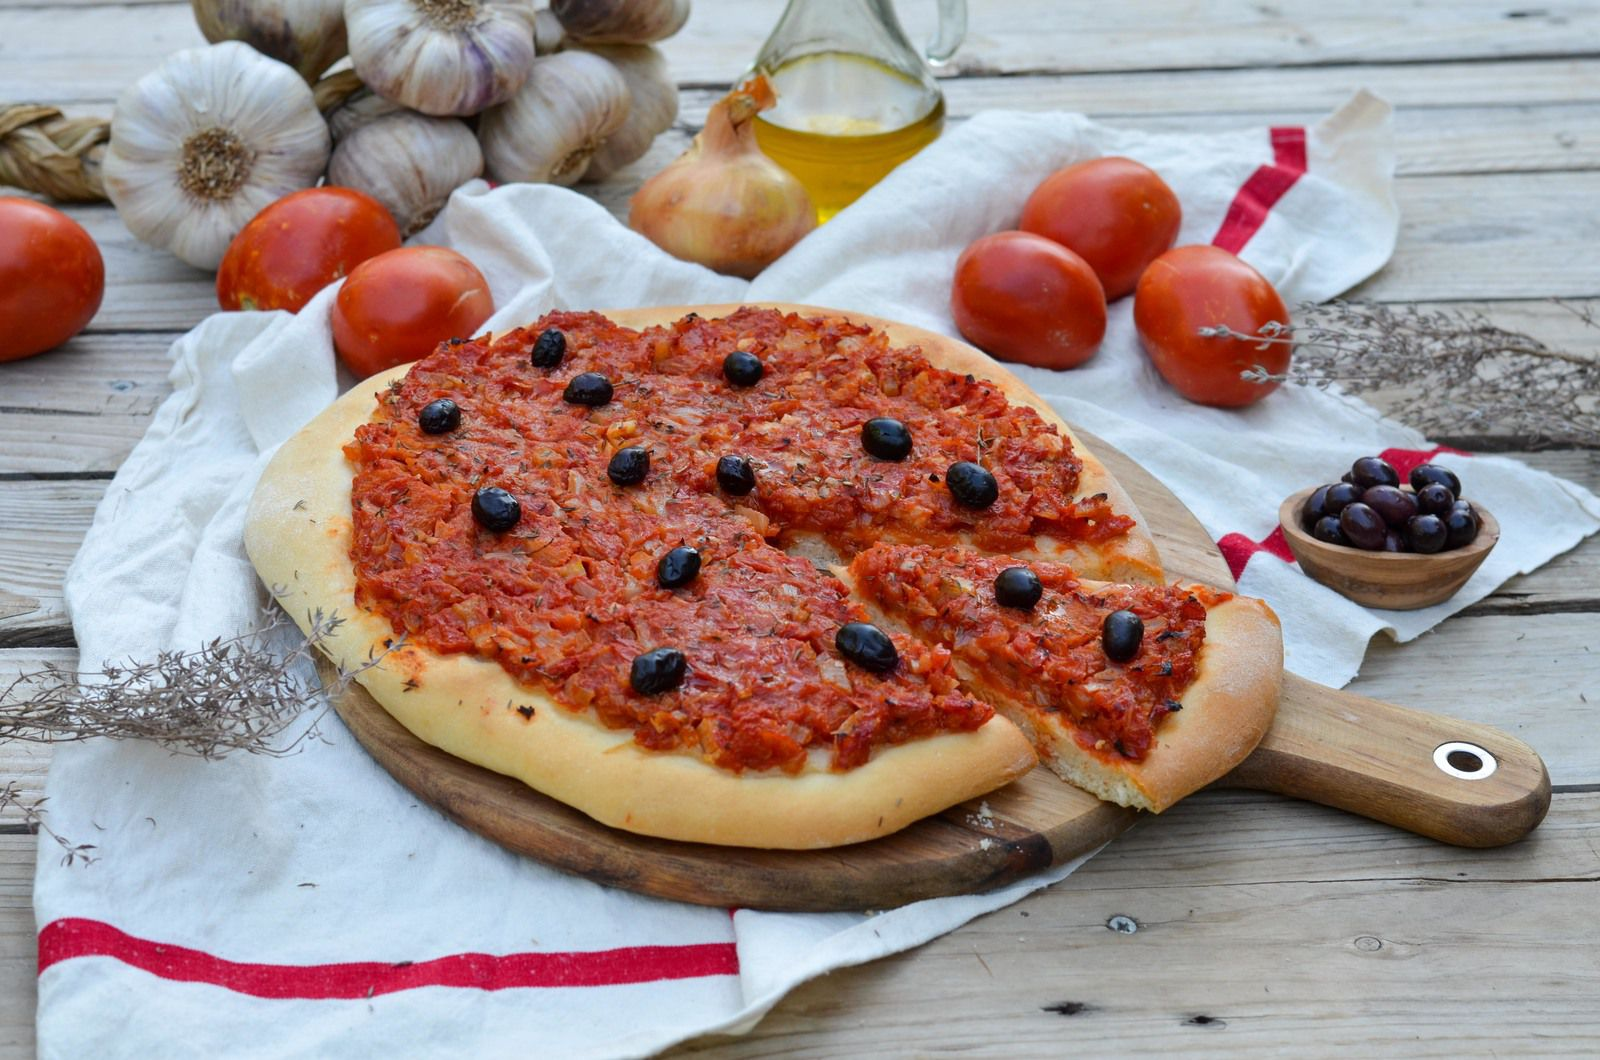 Recette de Papy mugeaud. - Page 3 Image%2F0931490%2F20200914%2Fob_93814a_pichade-tomate-menton